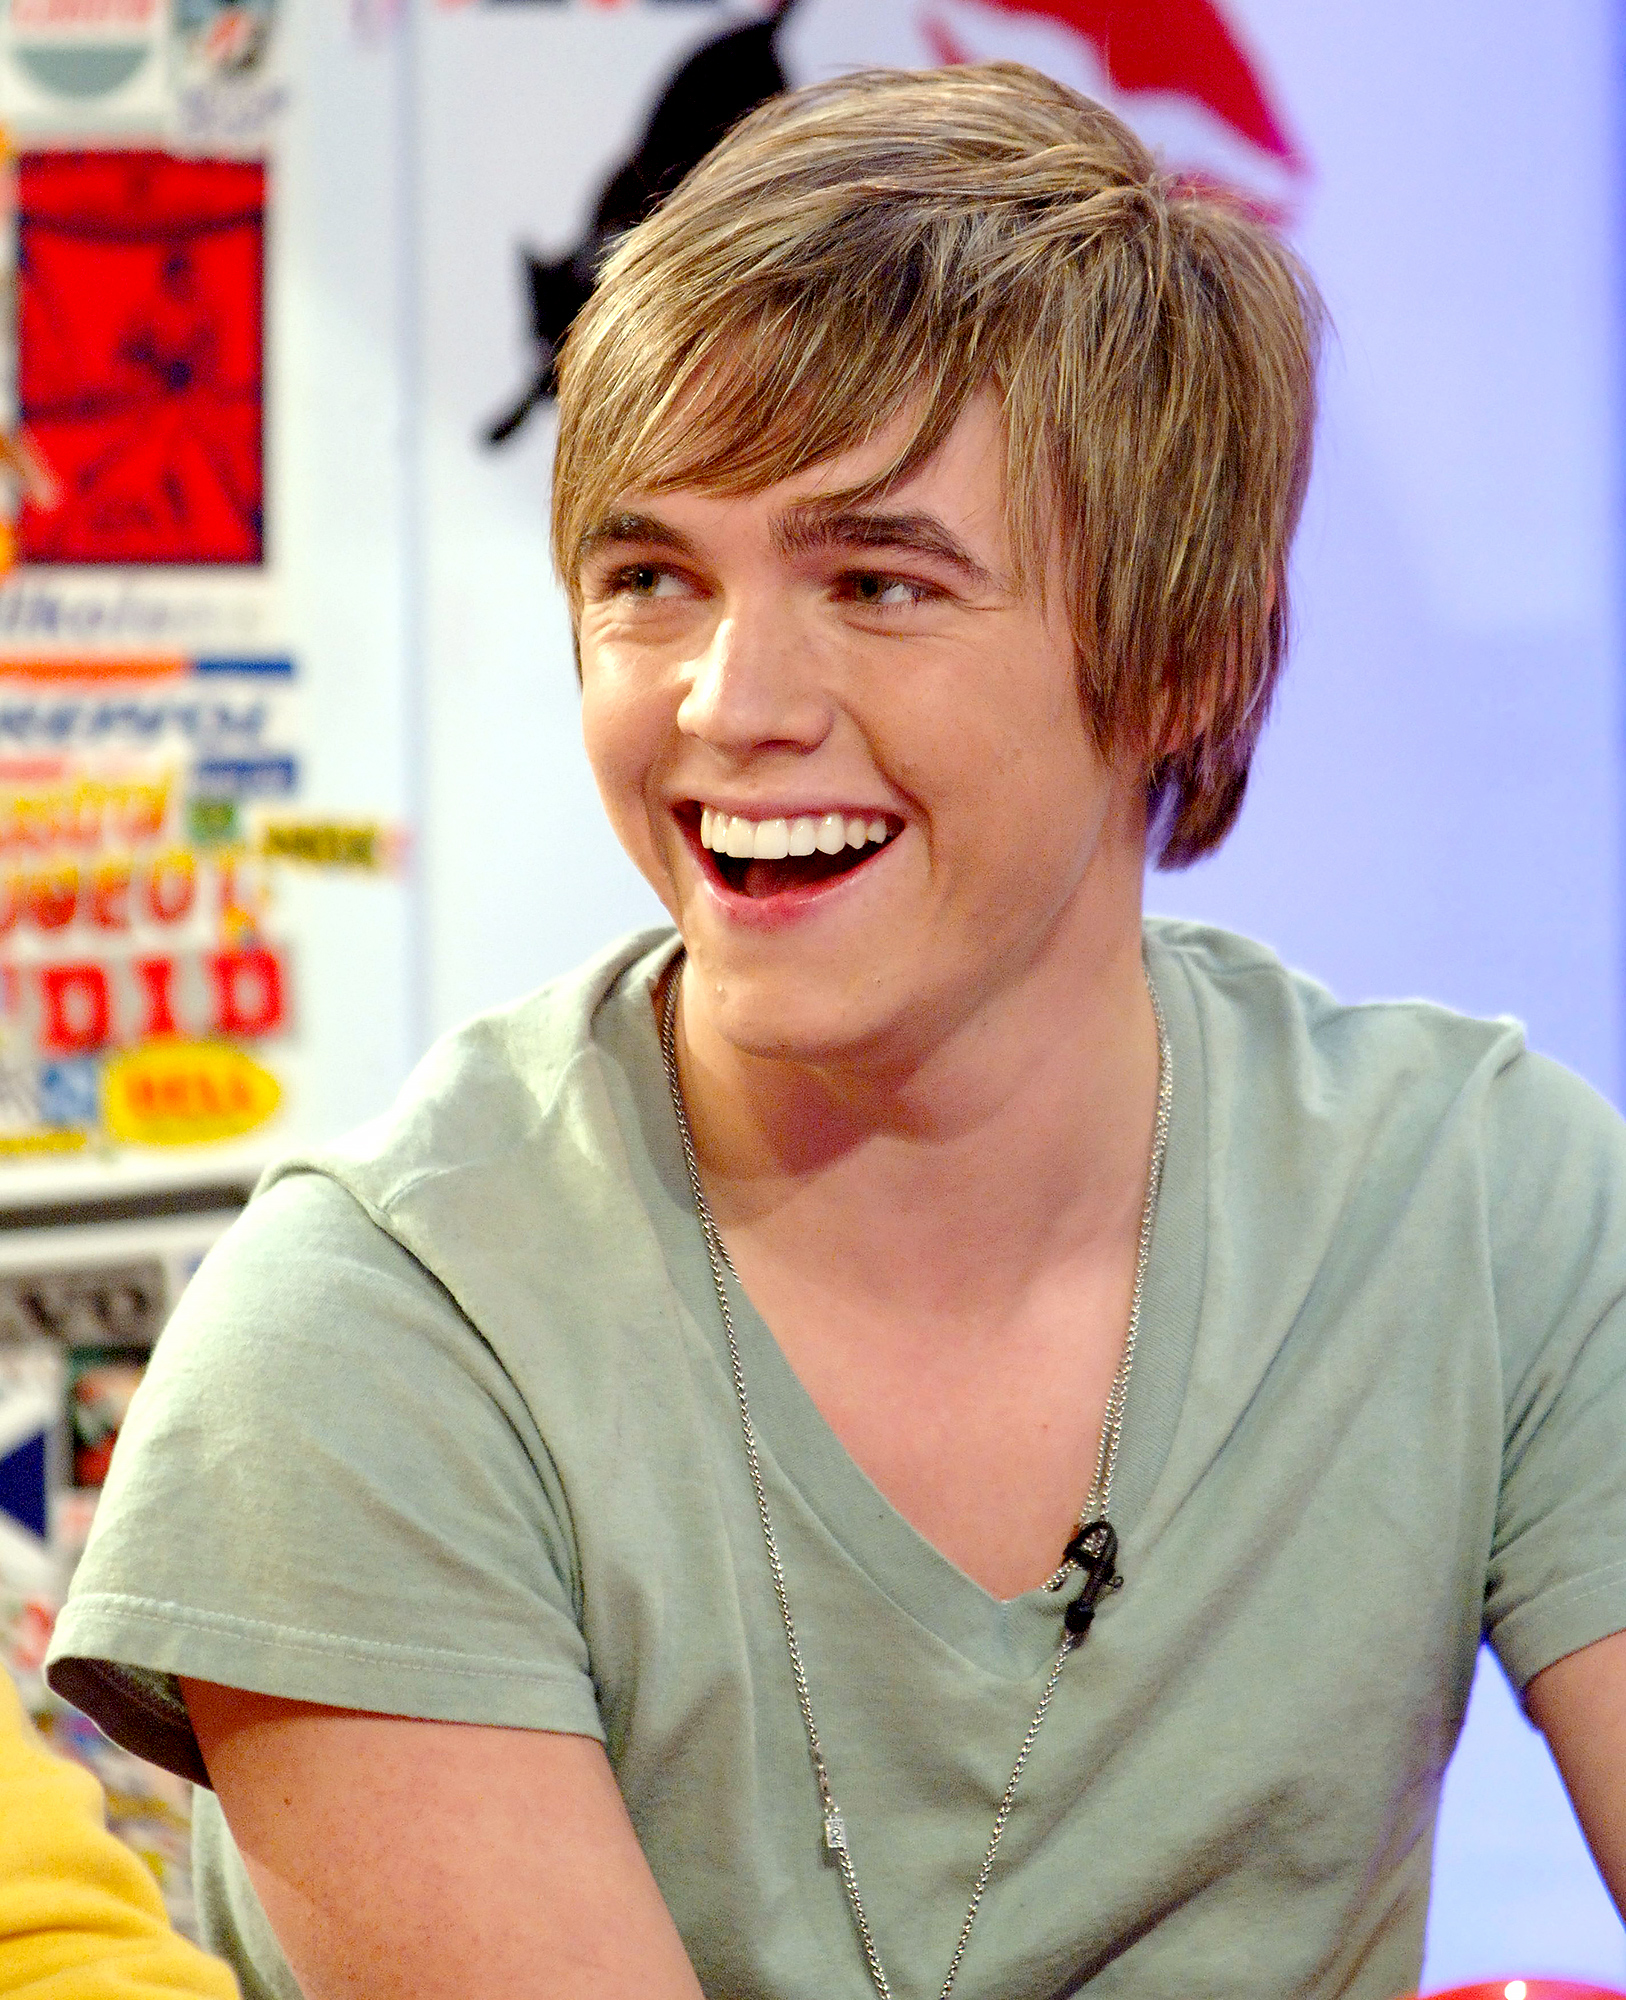 Jesse McCartney 25 Things You Don't Know About Me 2